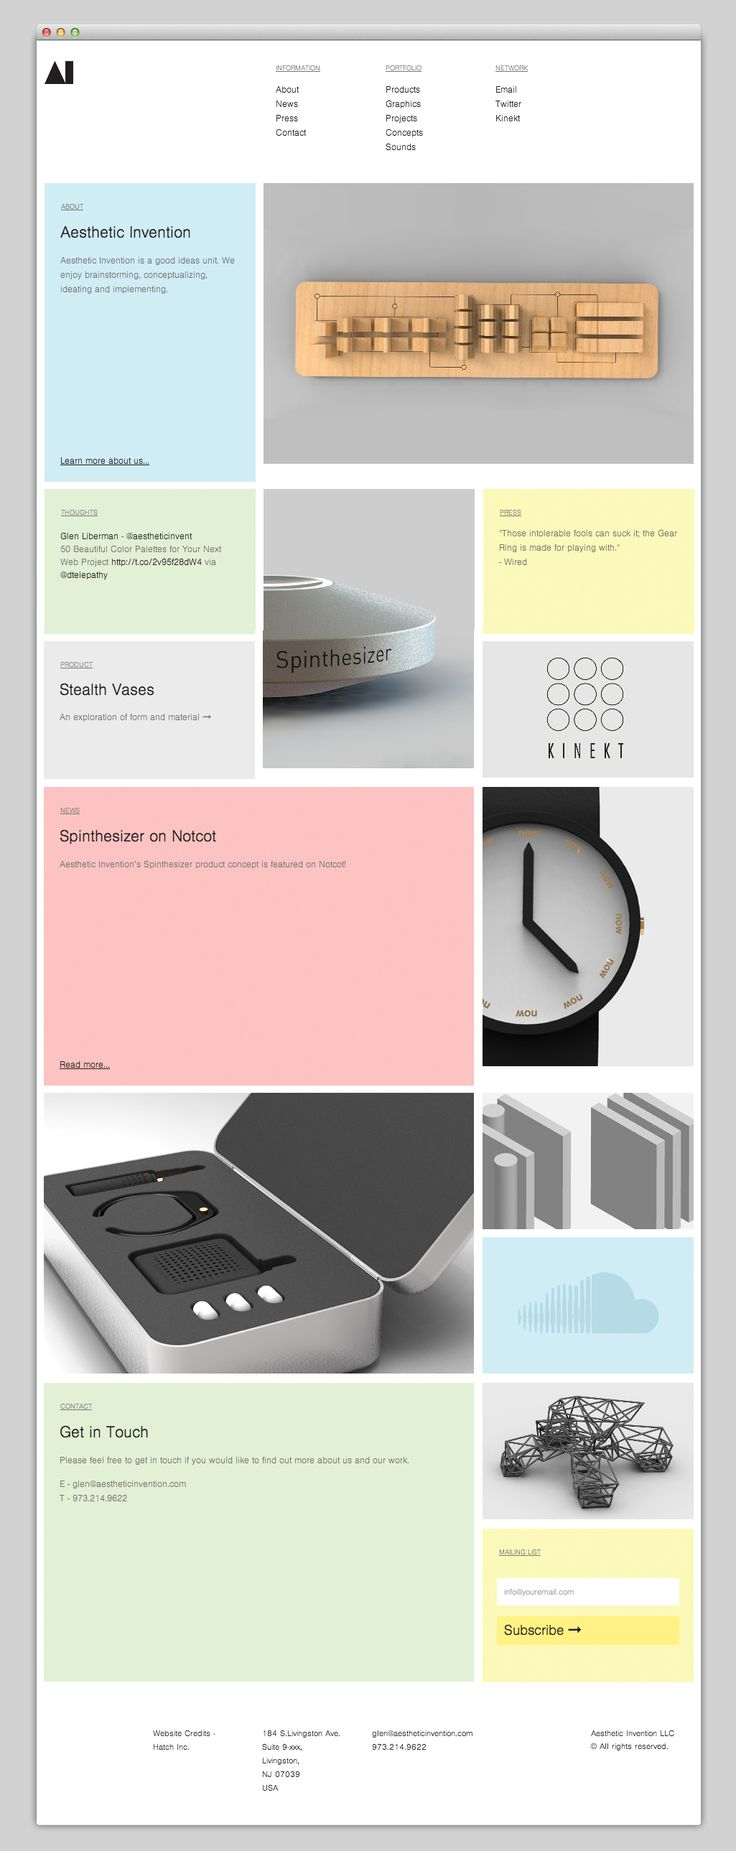 Aesthetic Invention is the personal portfolio of designer and entrepreneur, Glen…